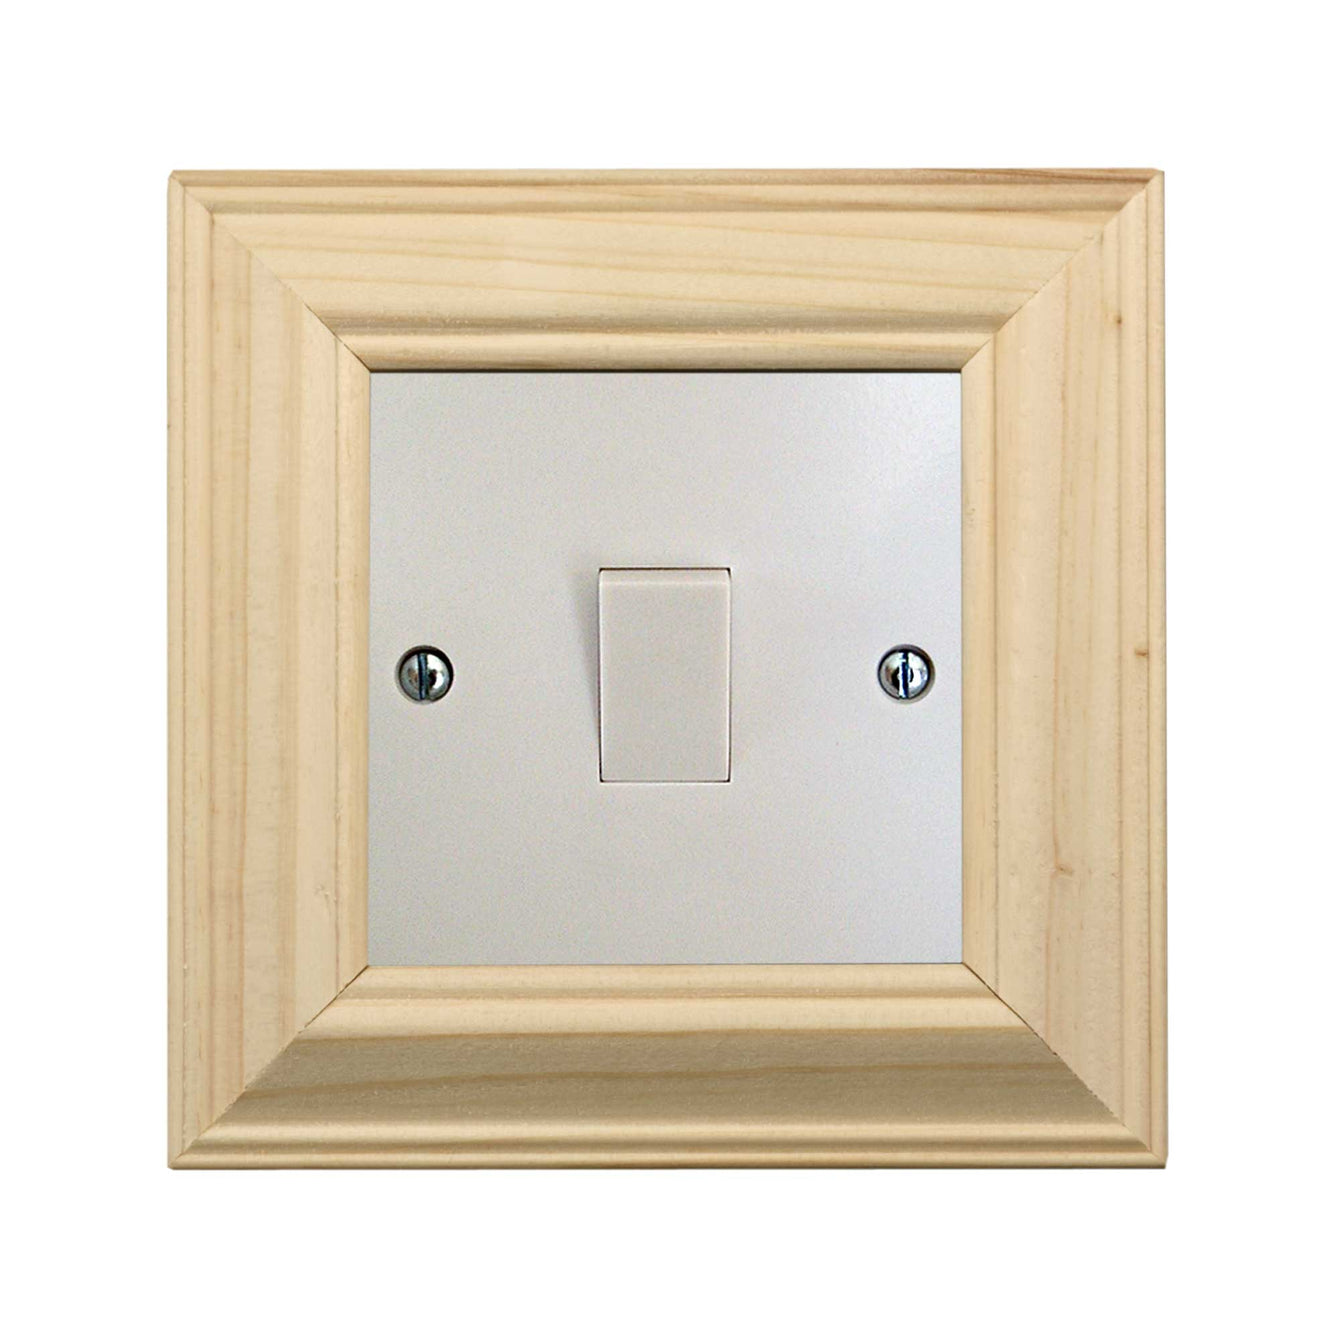 ElekTek Switch Surround Ovolo Frame Cover Finger Plate Pine Shades - Buy It Better Honey Pine